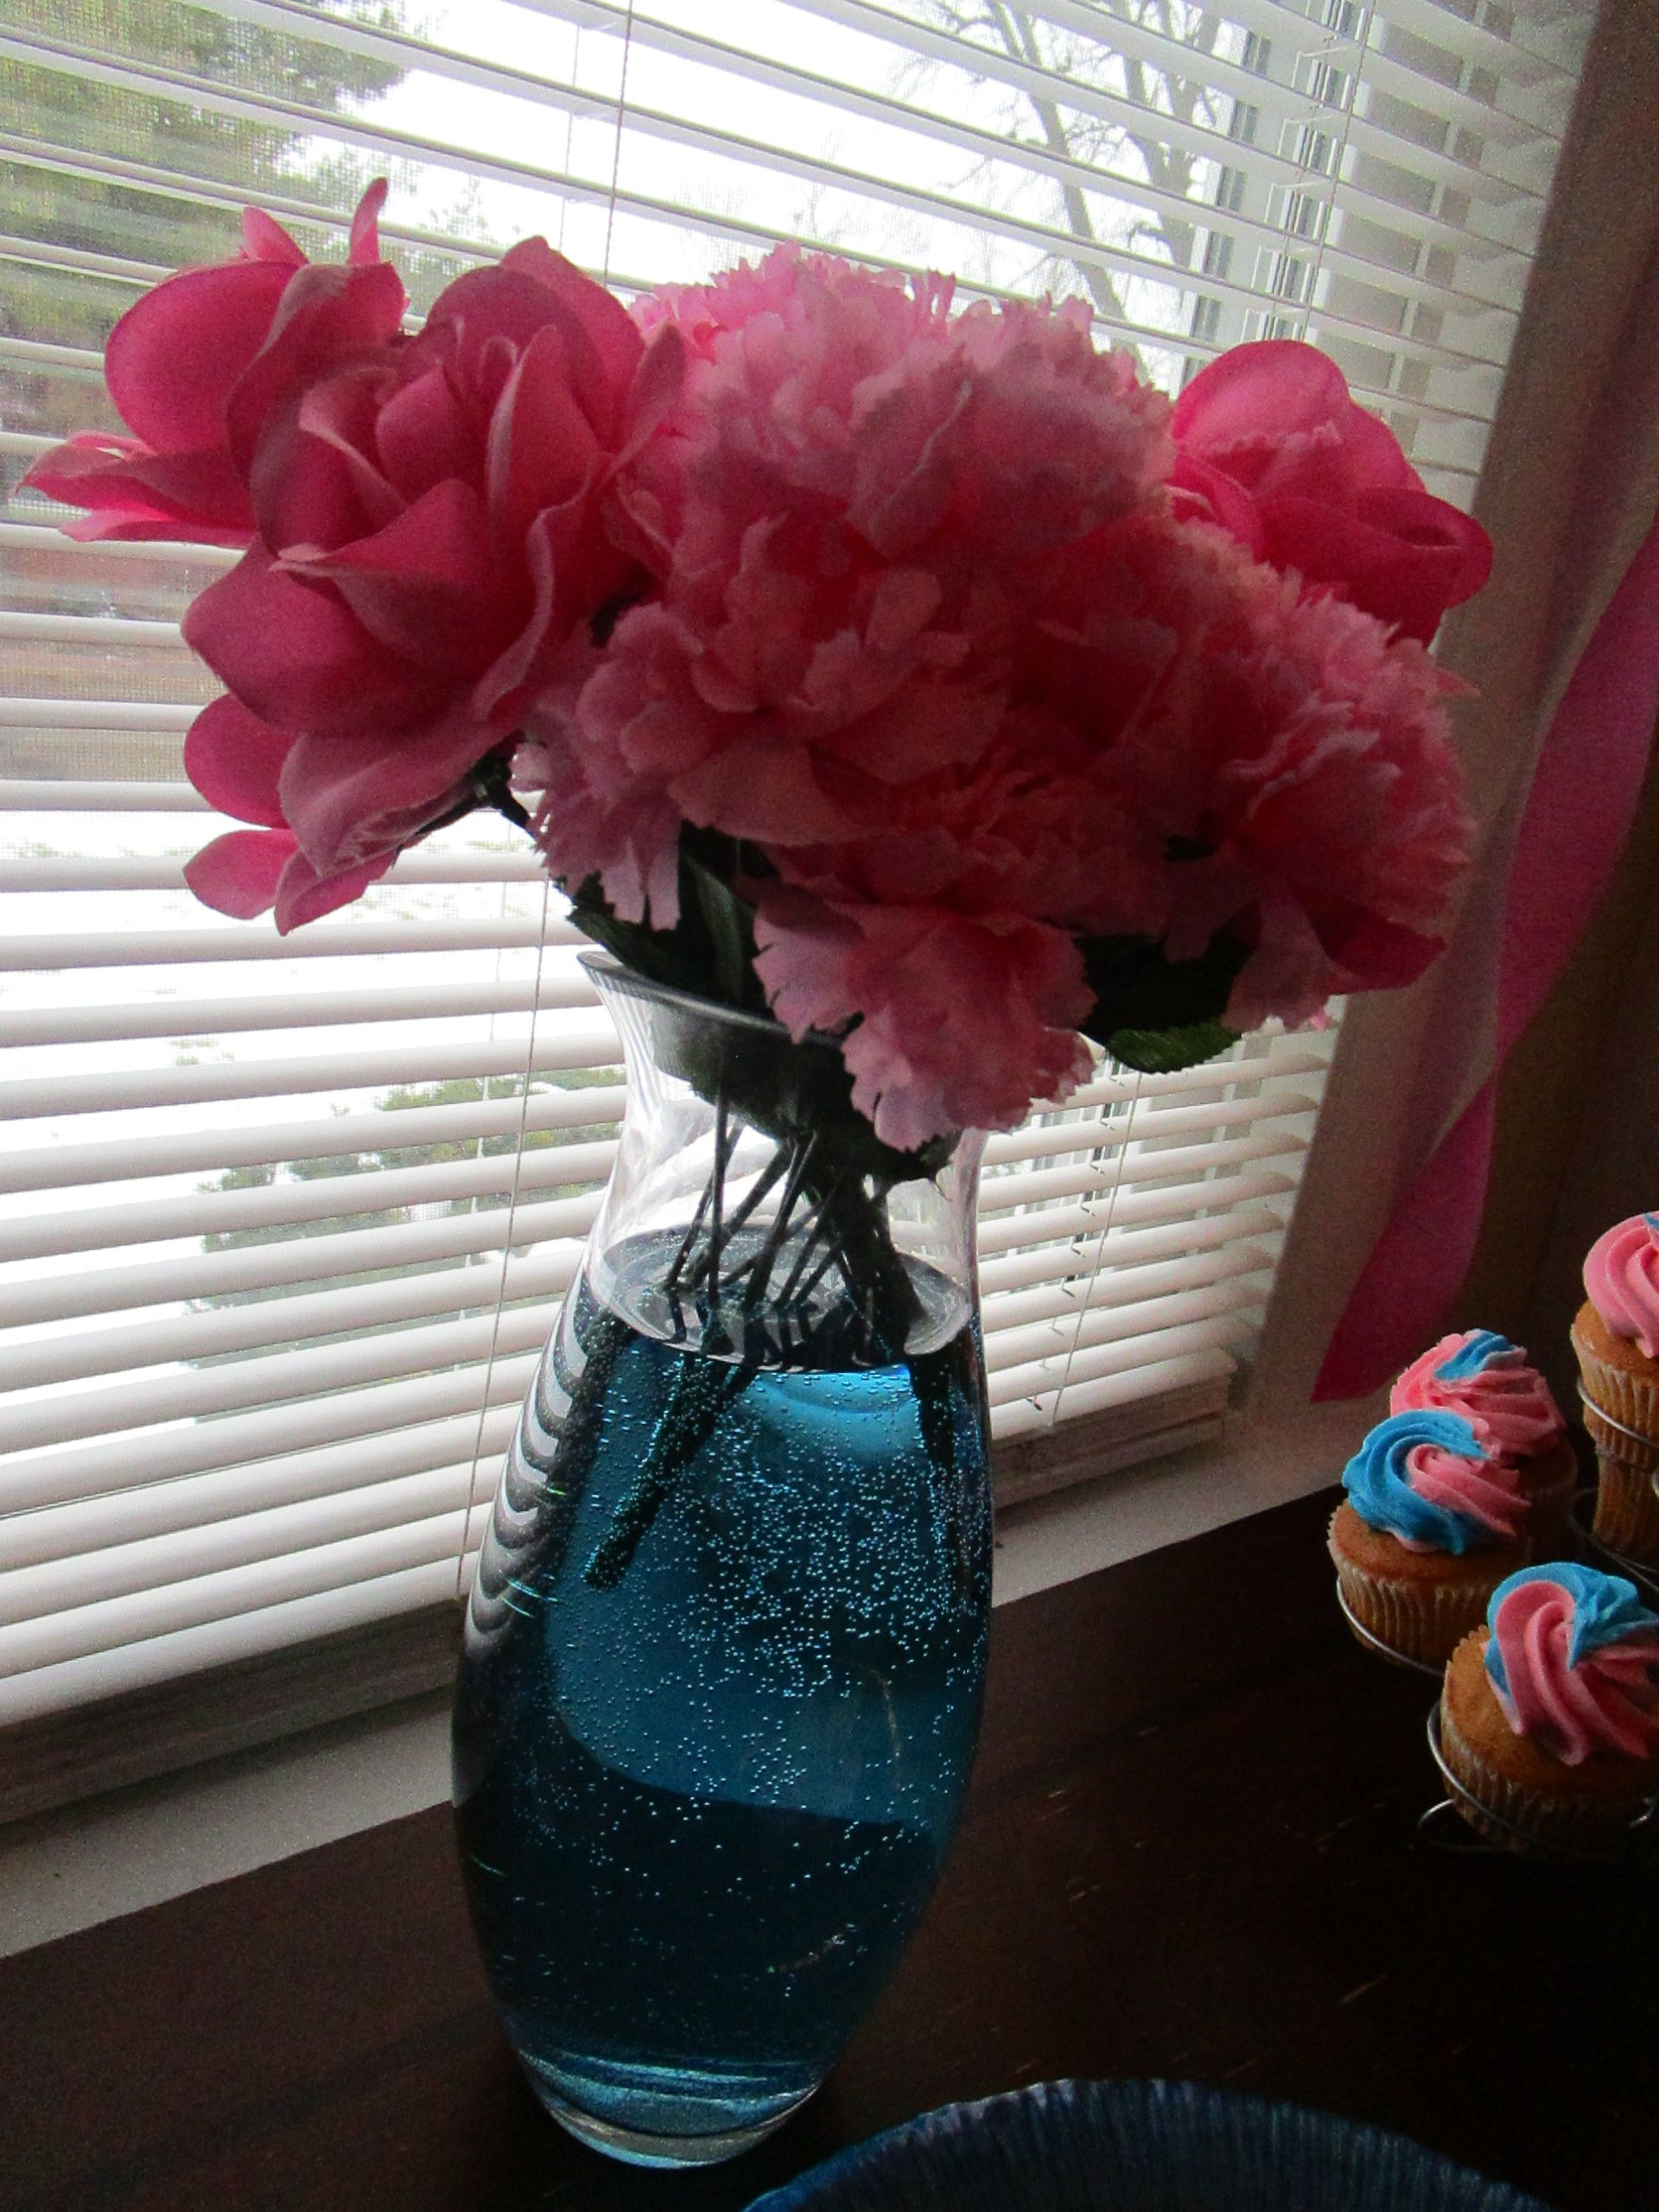 Gender Reveal Party Cheap Decorations - pink flowers bought at ...